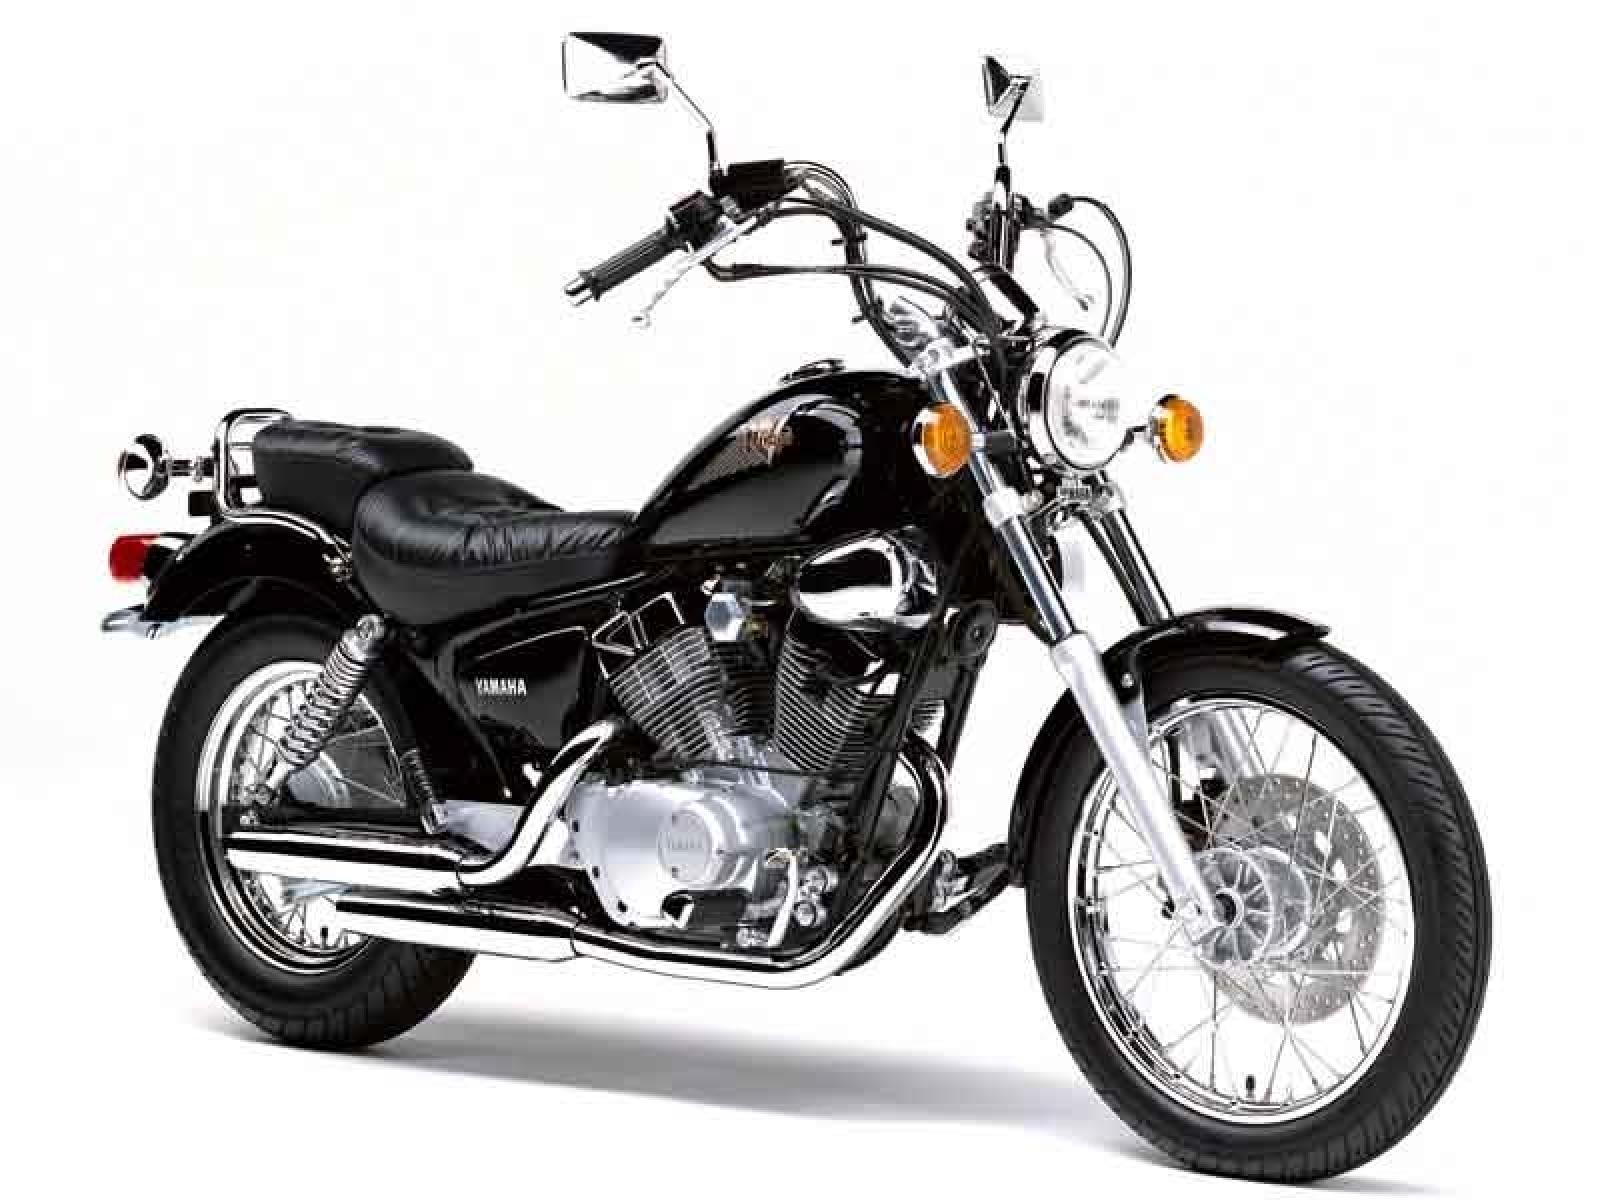 2000 yamaha xv 250 virago moto zombdrive com. Black Bedroom Furniture Sets. Home Design Ideas